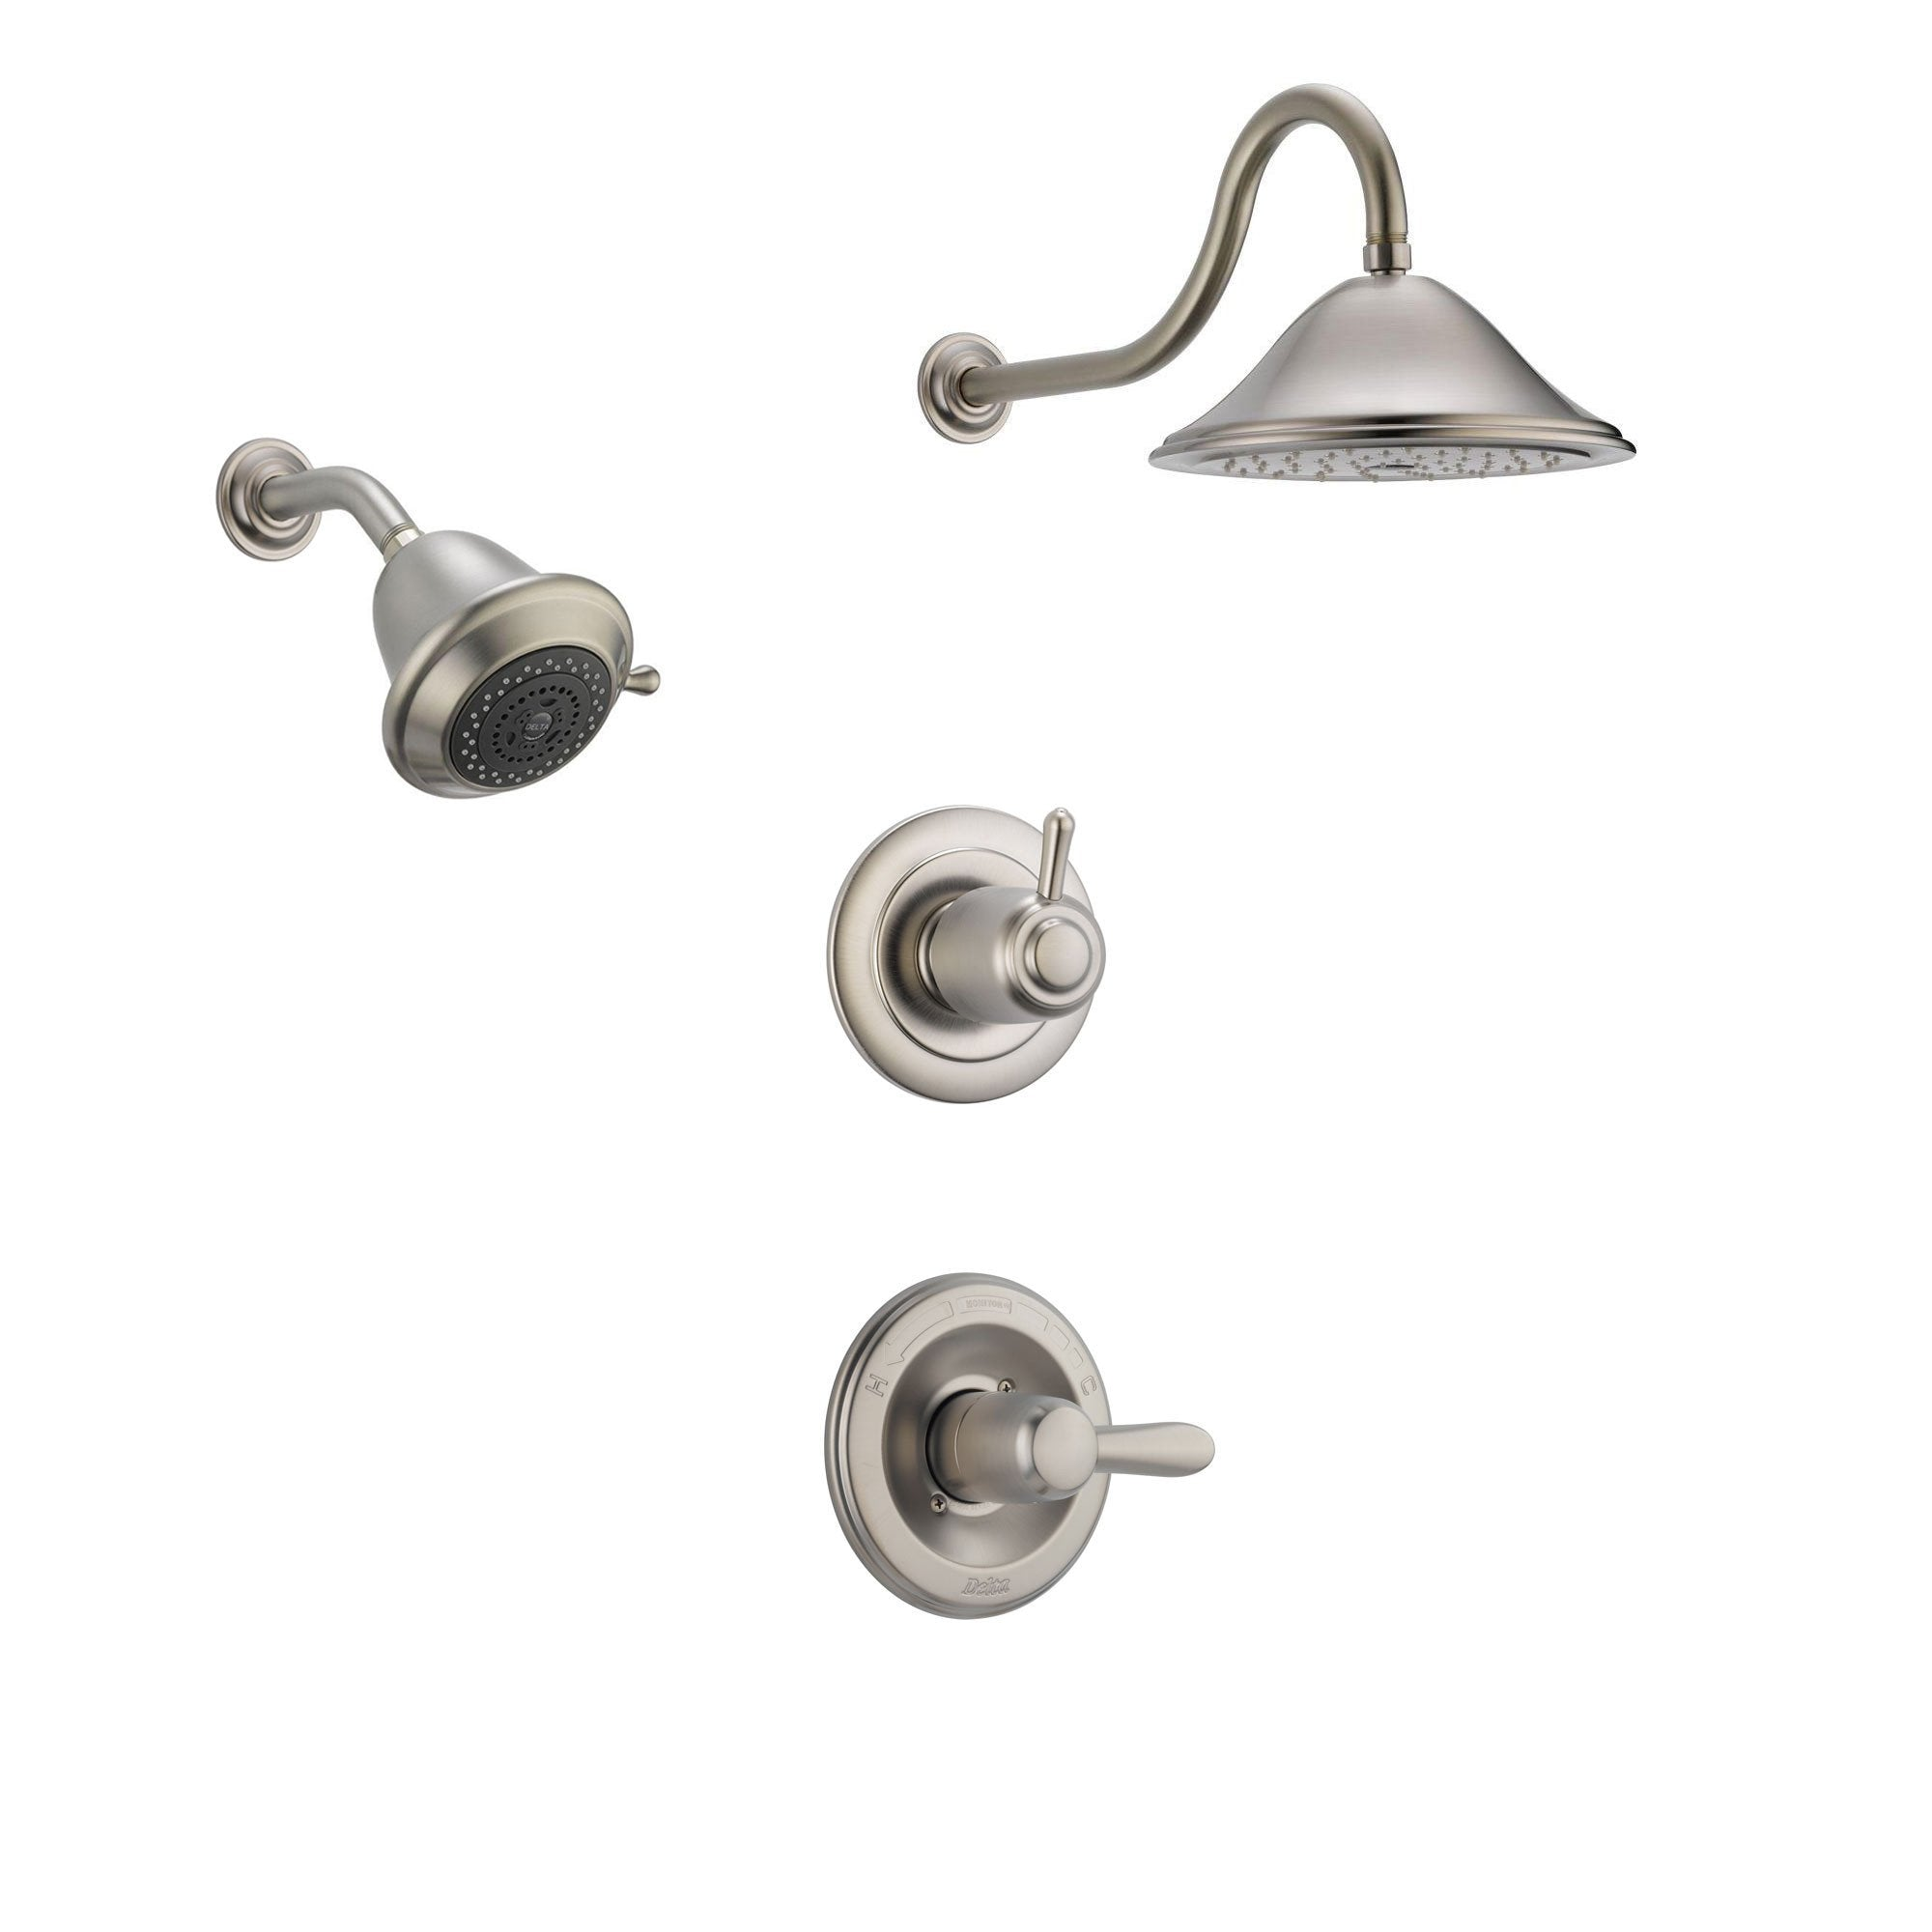 Delta Lahara Stainless Steel Shower System with Normal Shower Handle, 3-setting Diverter, Large Ceiling Mount Showerhead, and Wall Mount Showerhead SS143883SS